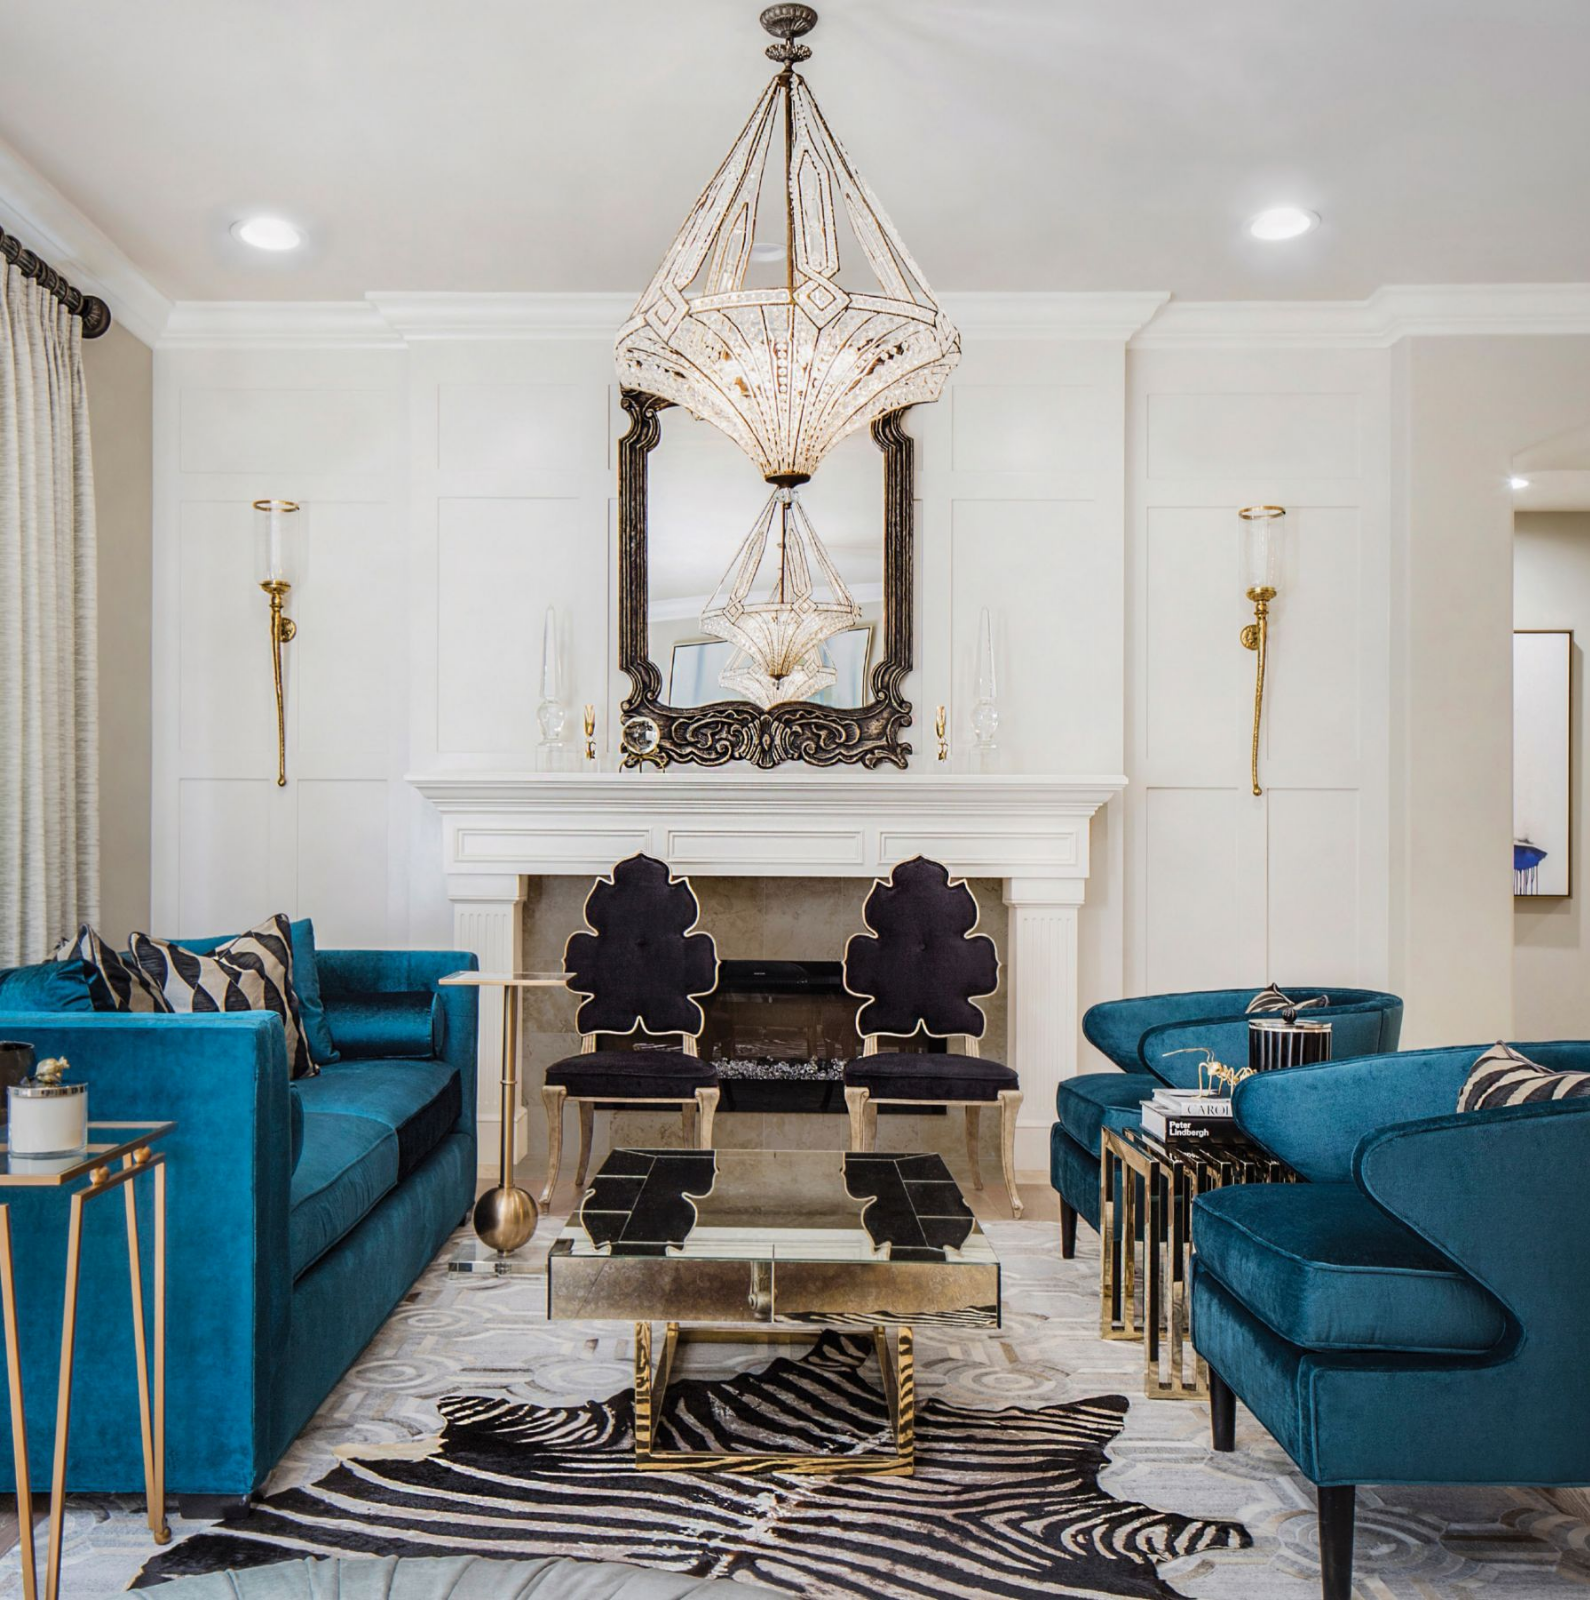 Stunning Teal Velvet Seating Is Perfectly Enhanced By Modern Art Deco Vibes In T Contemporary Interior Design Living Room Luxe Living Room Art Deco Living Room